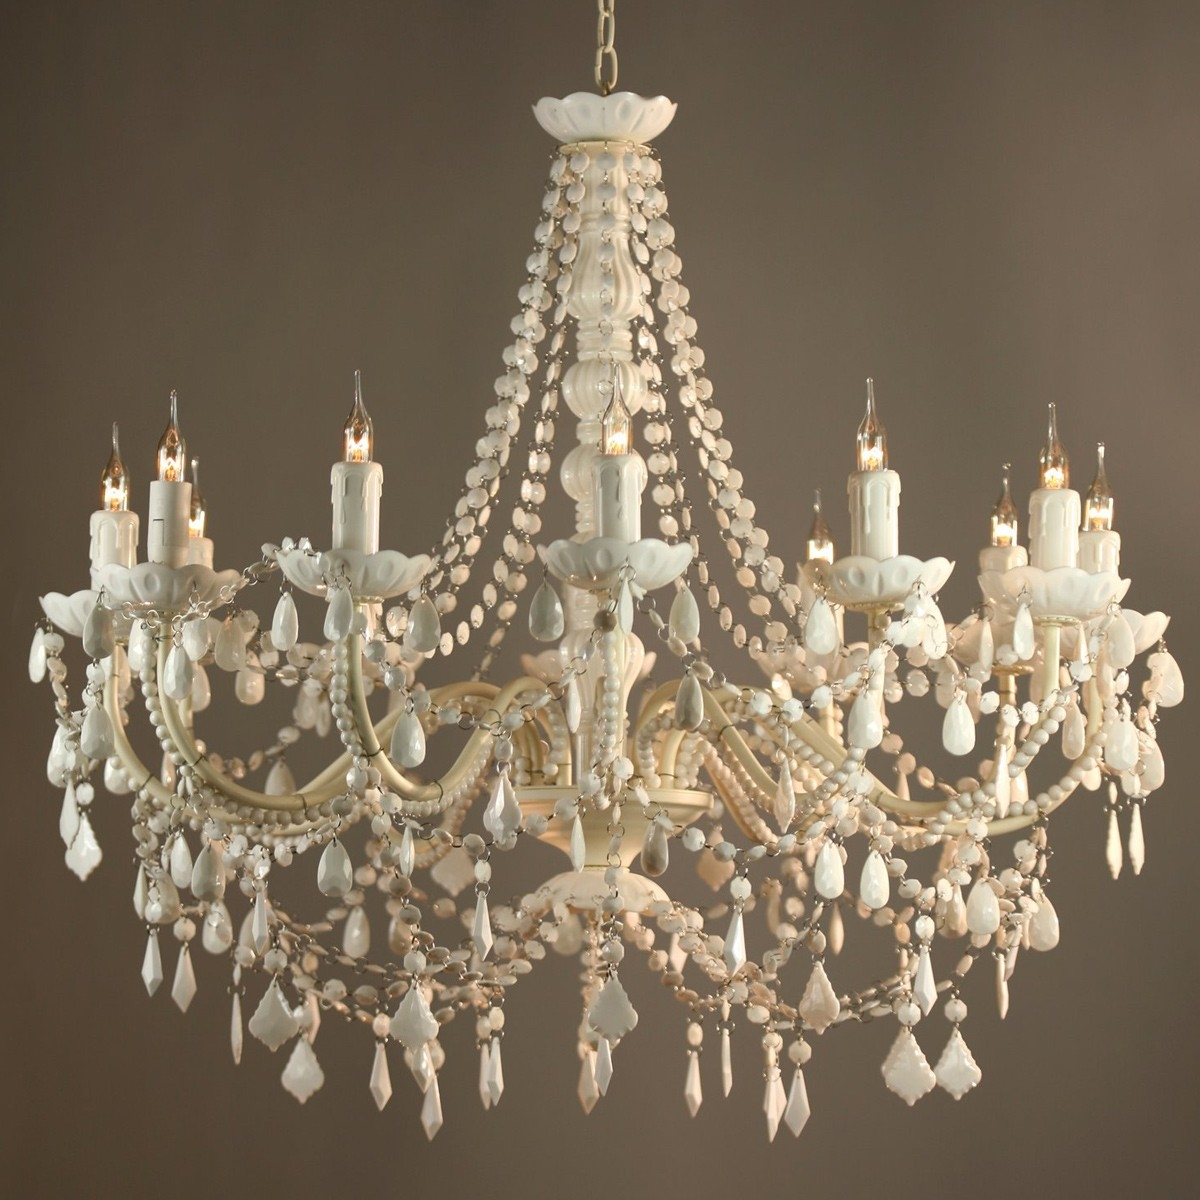 Vintage Chandeliers Best Design News With Vintage Chandeliers (Image 10 of 15)